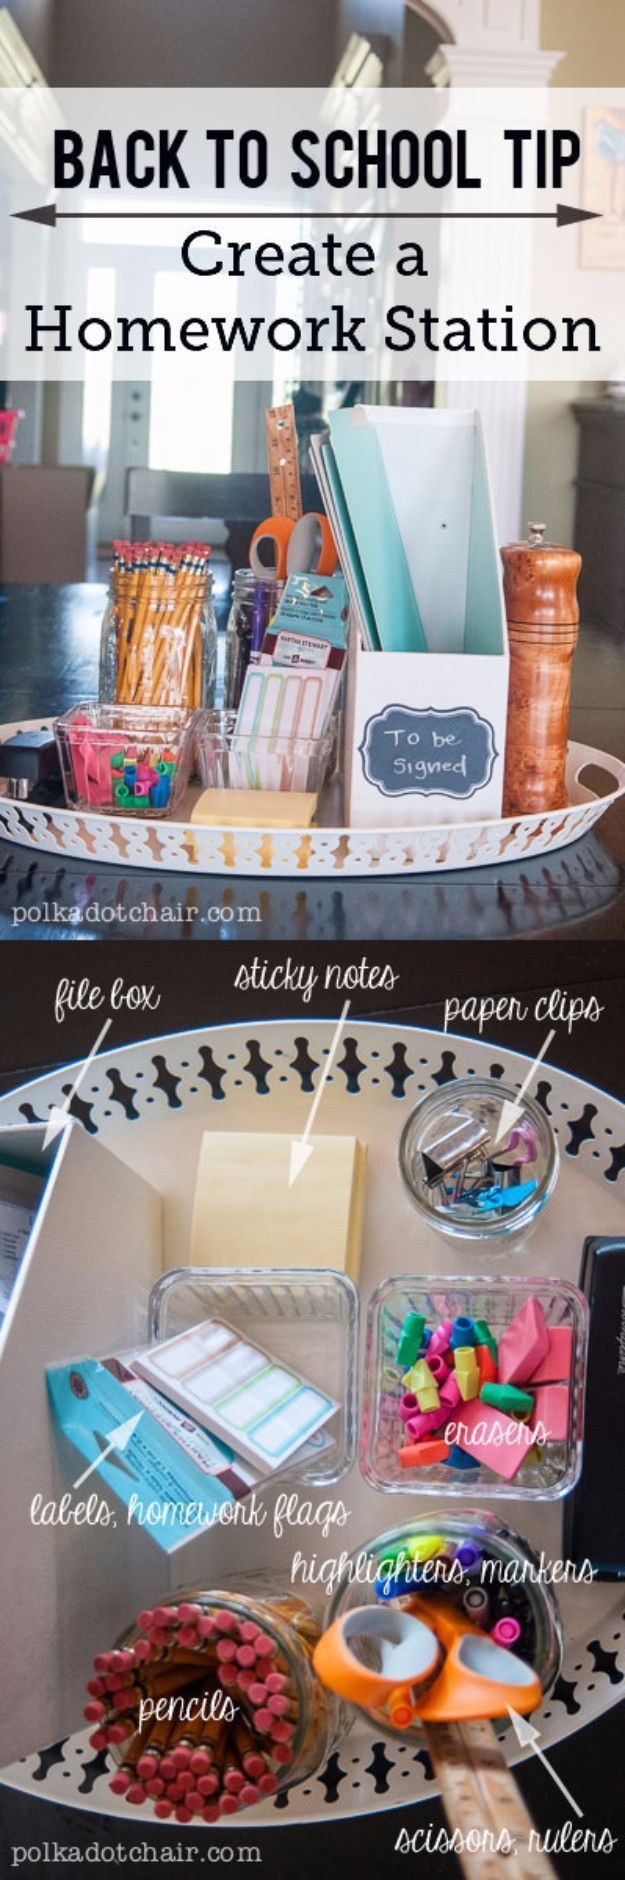 50 Best Back to School DIY Ideas